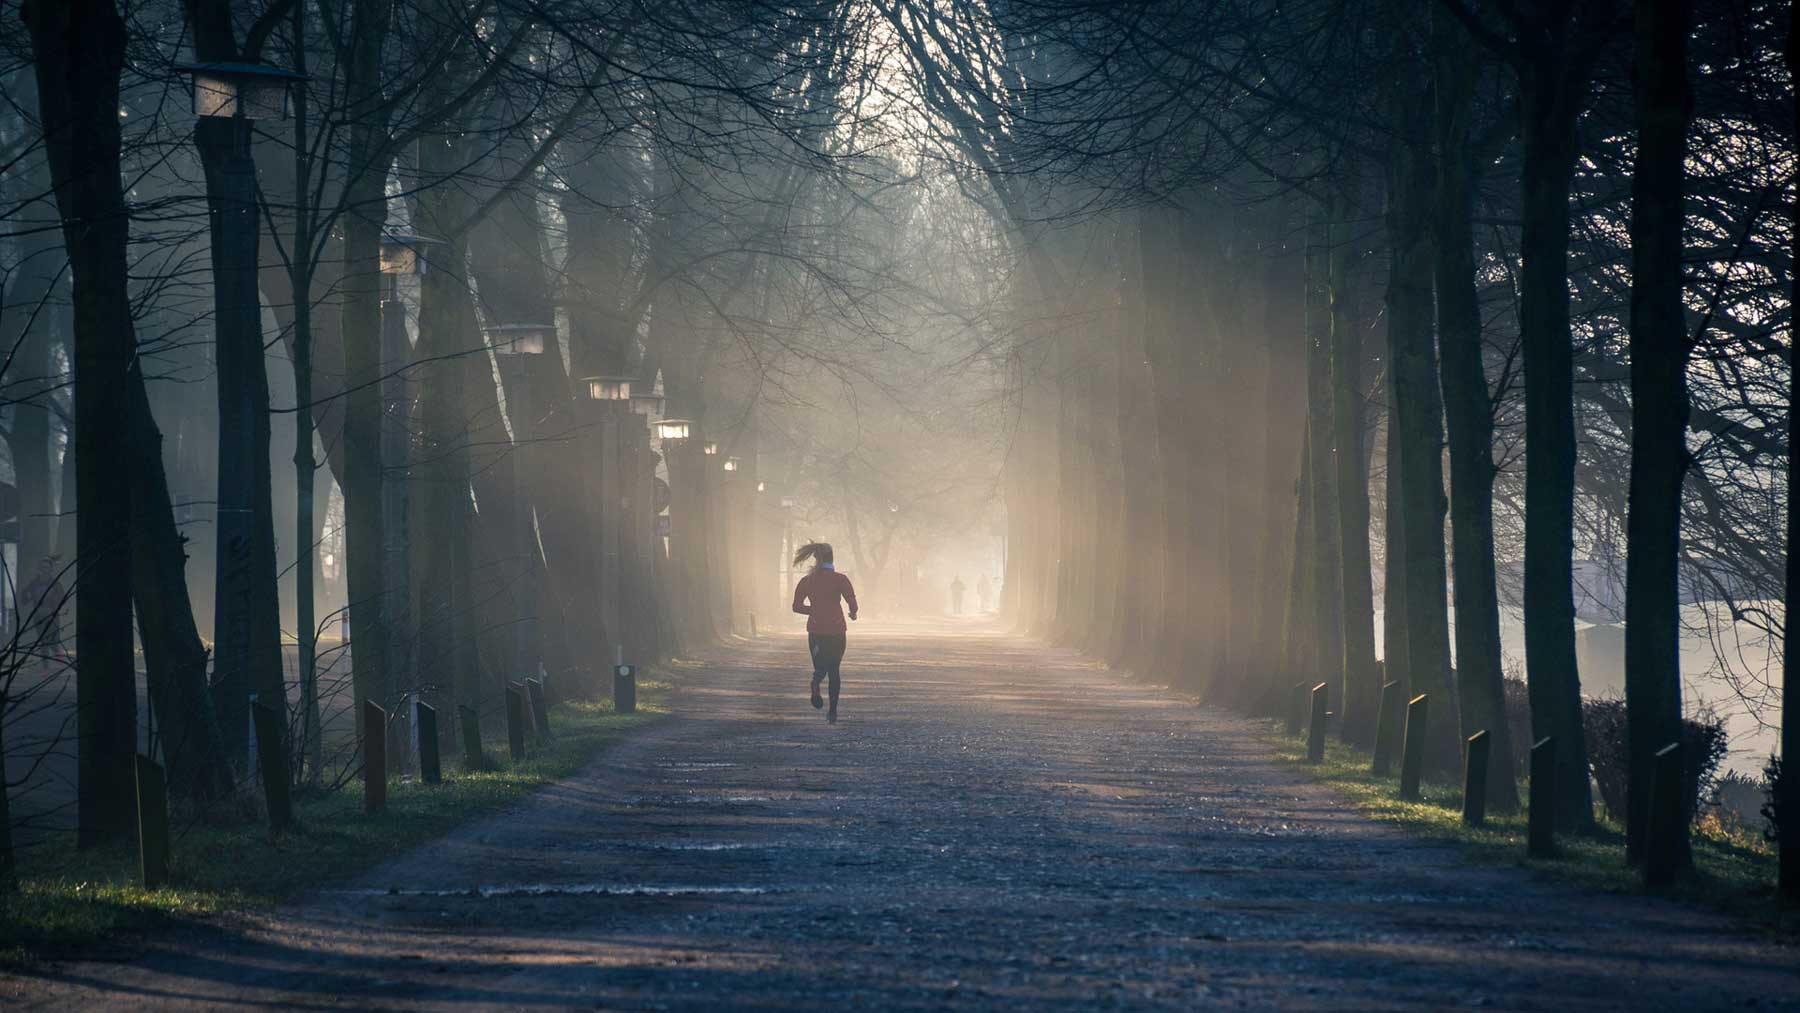 woman running through avenue of trees with sunlight filtering through